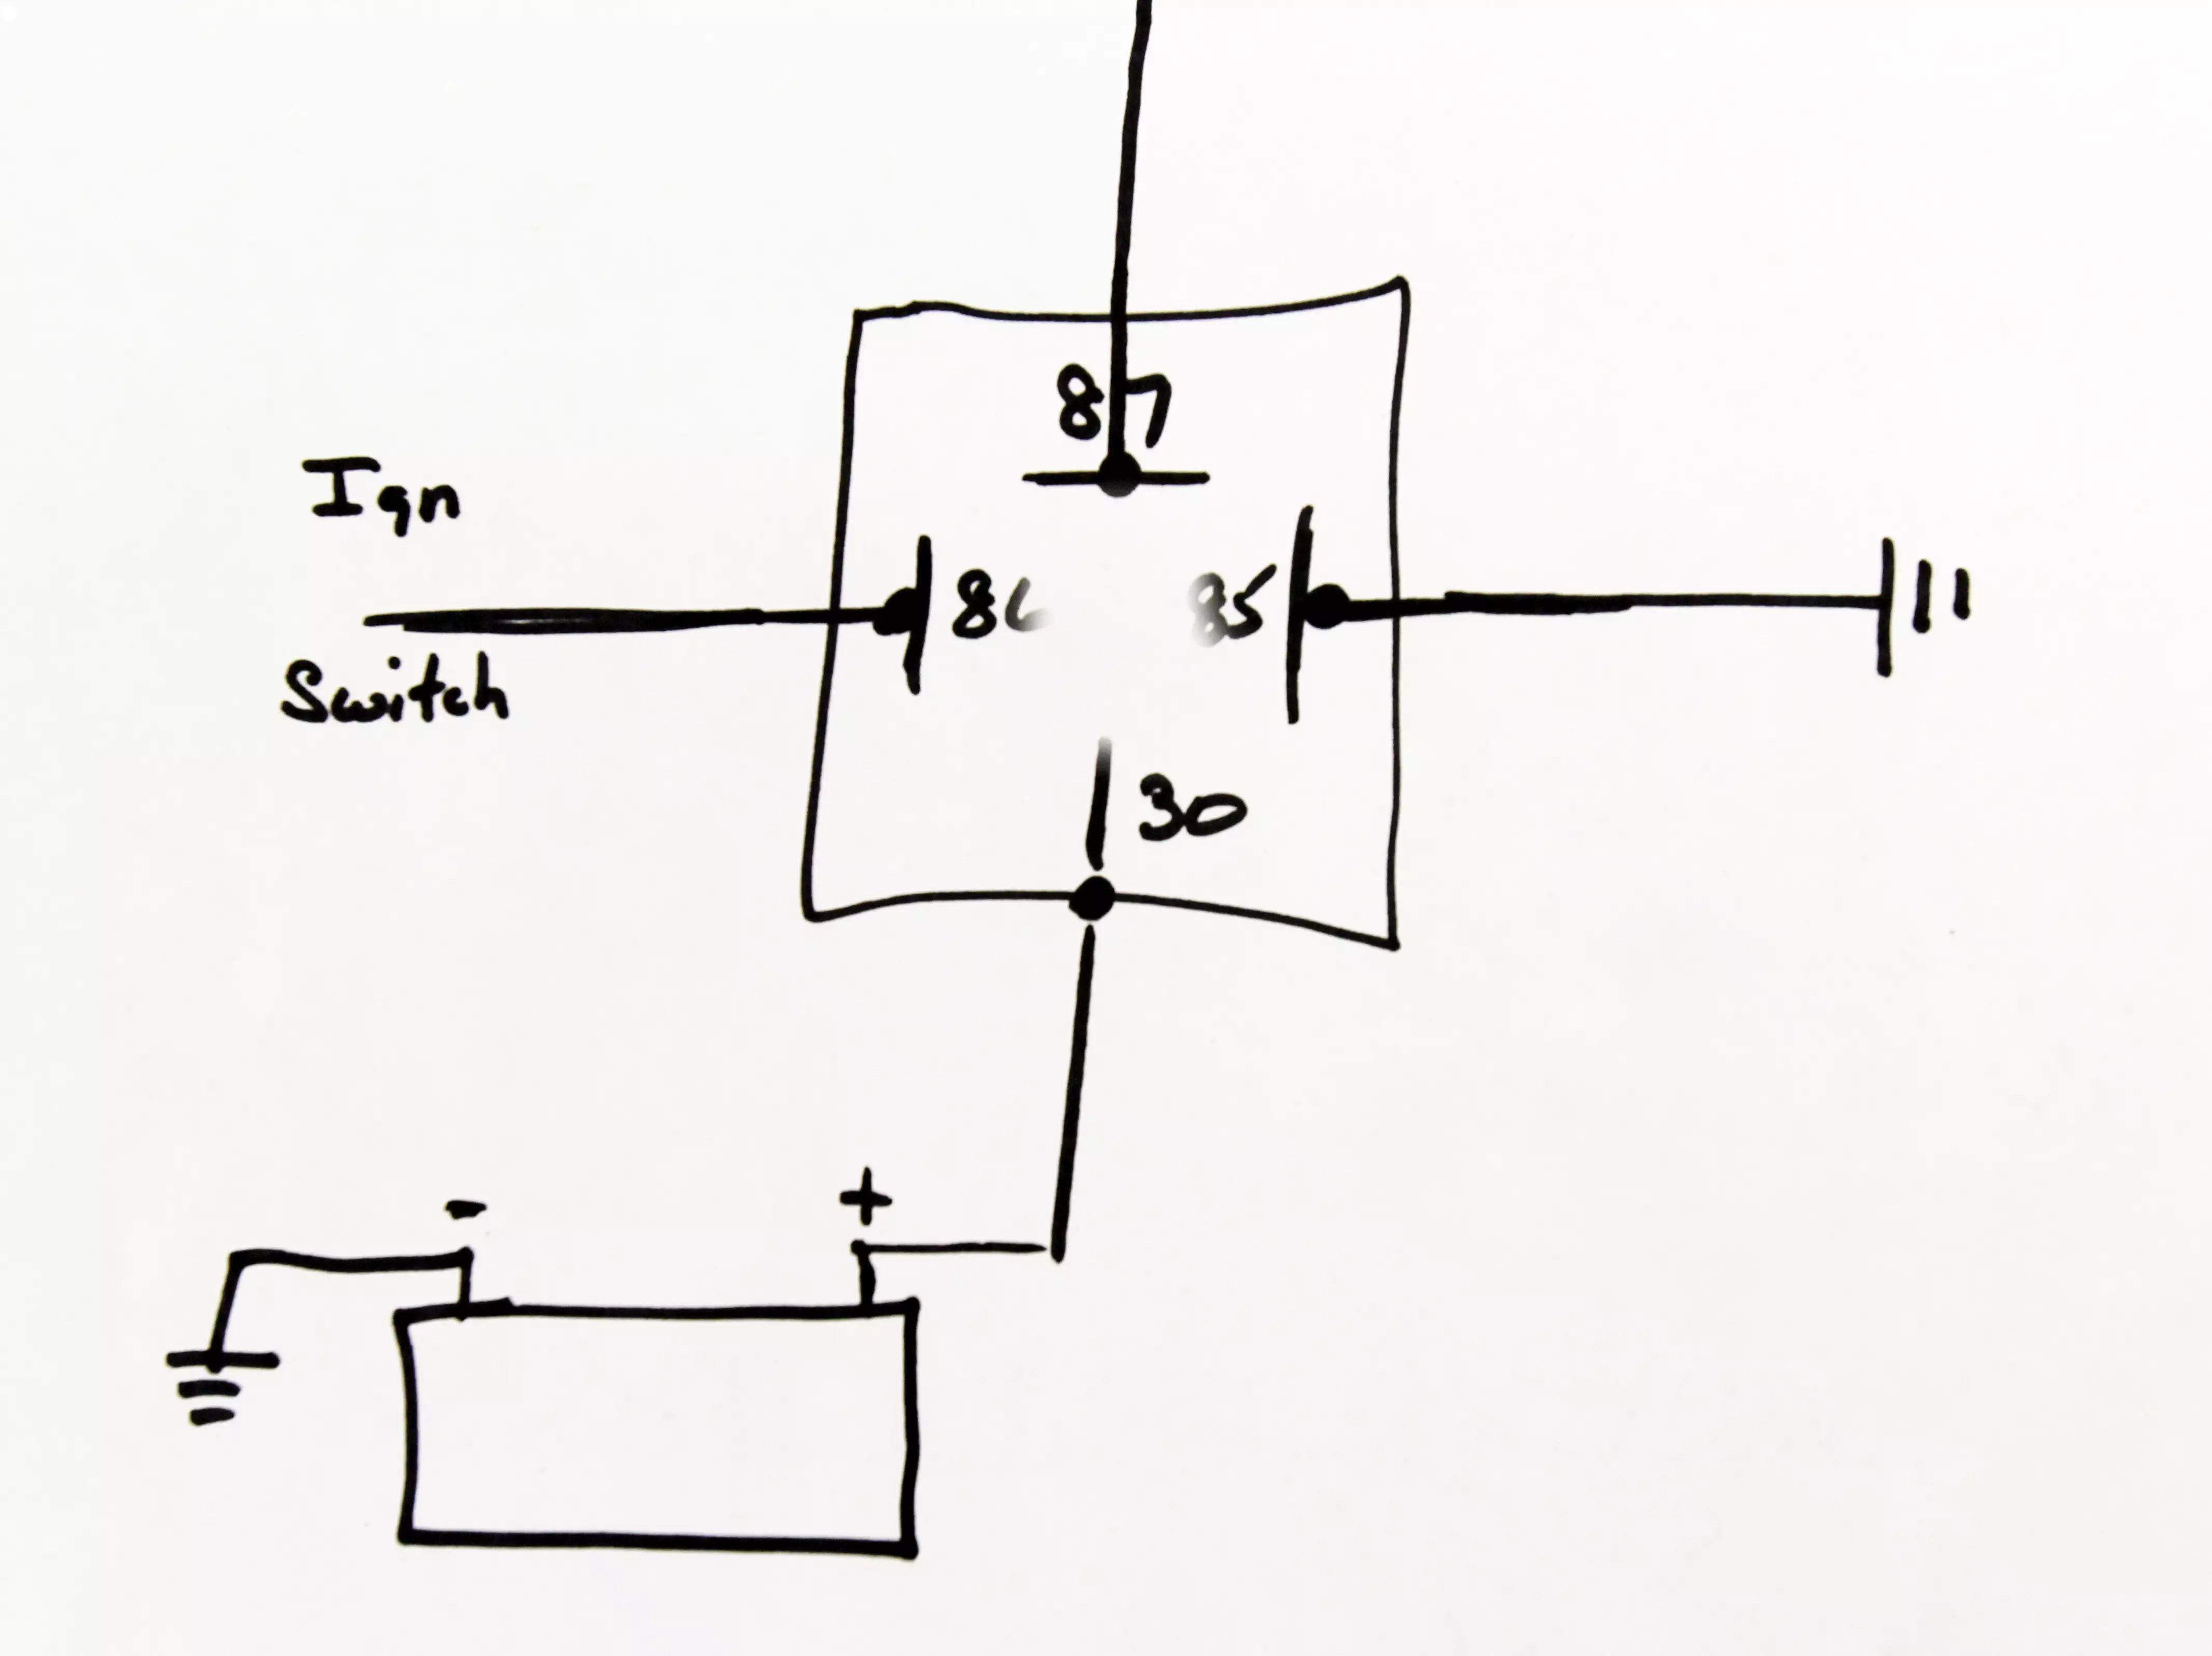 circuit diagram meaning in chinese